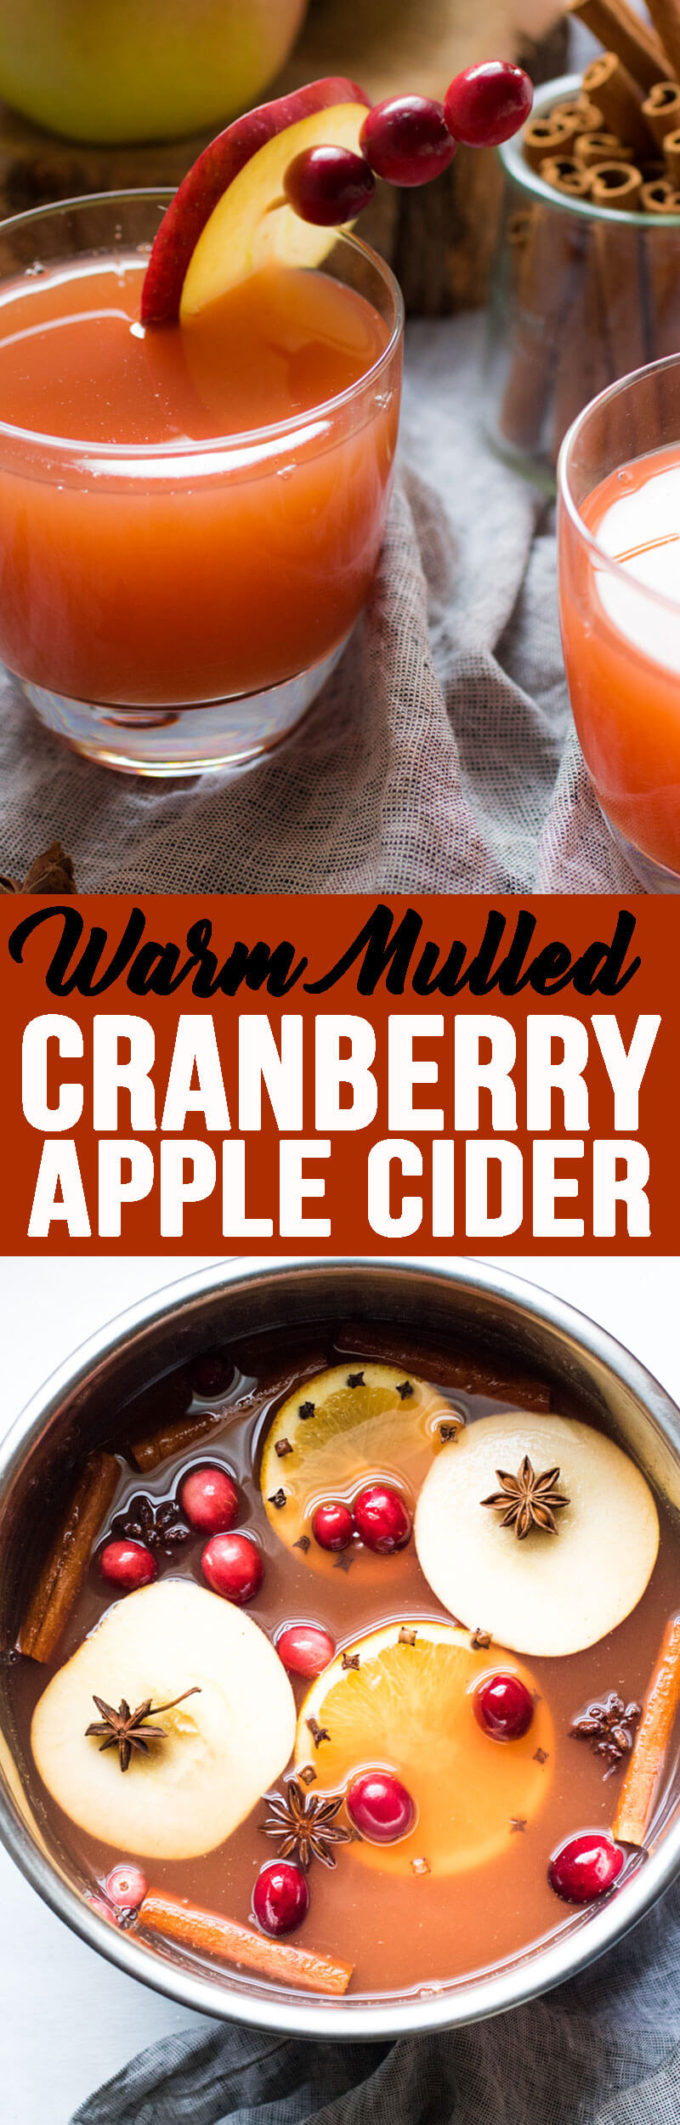 Warm Mulled Cranberry Apple Cider - Eazy Peazy Mealz